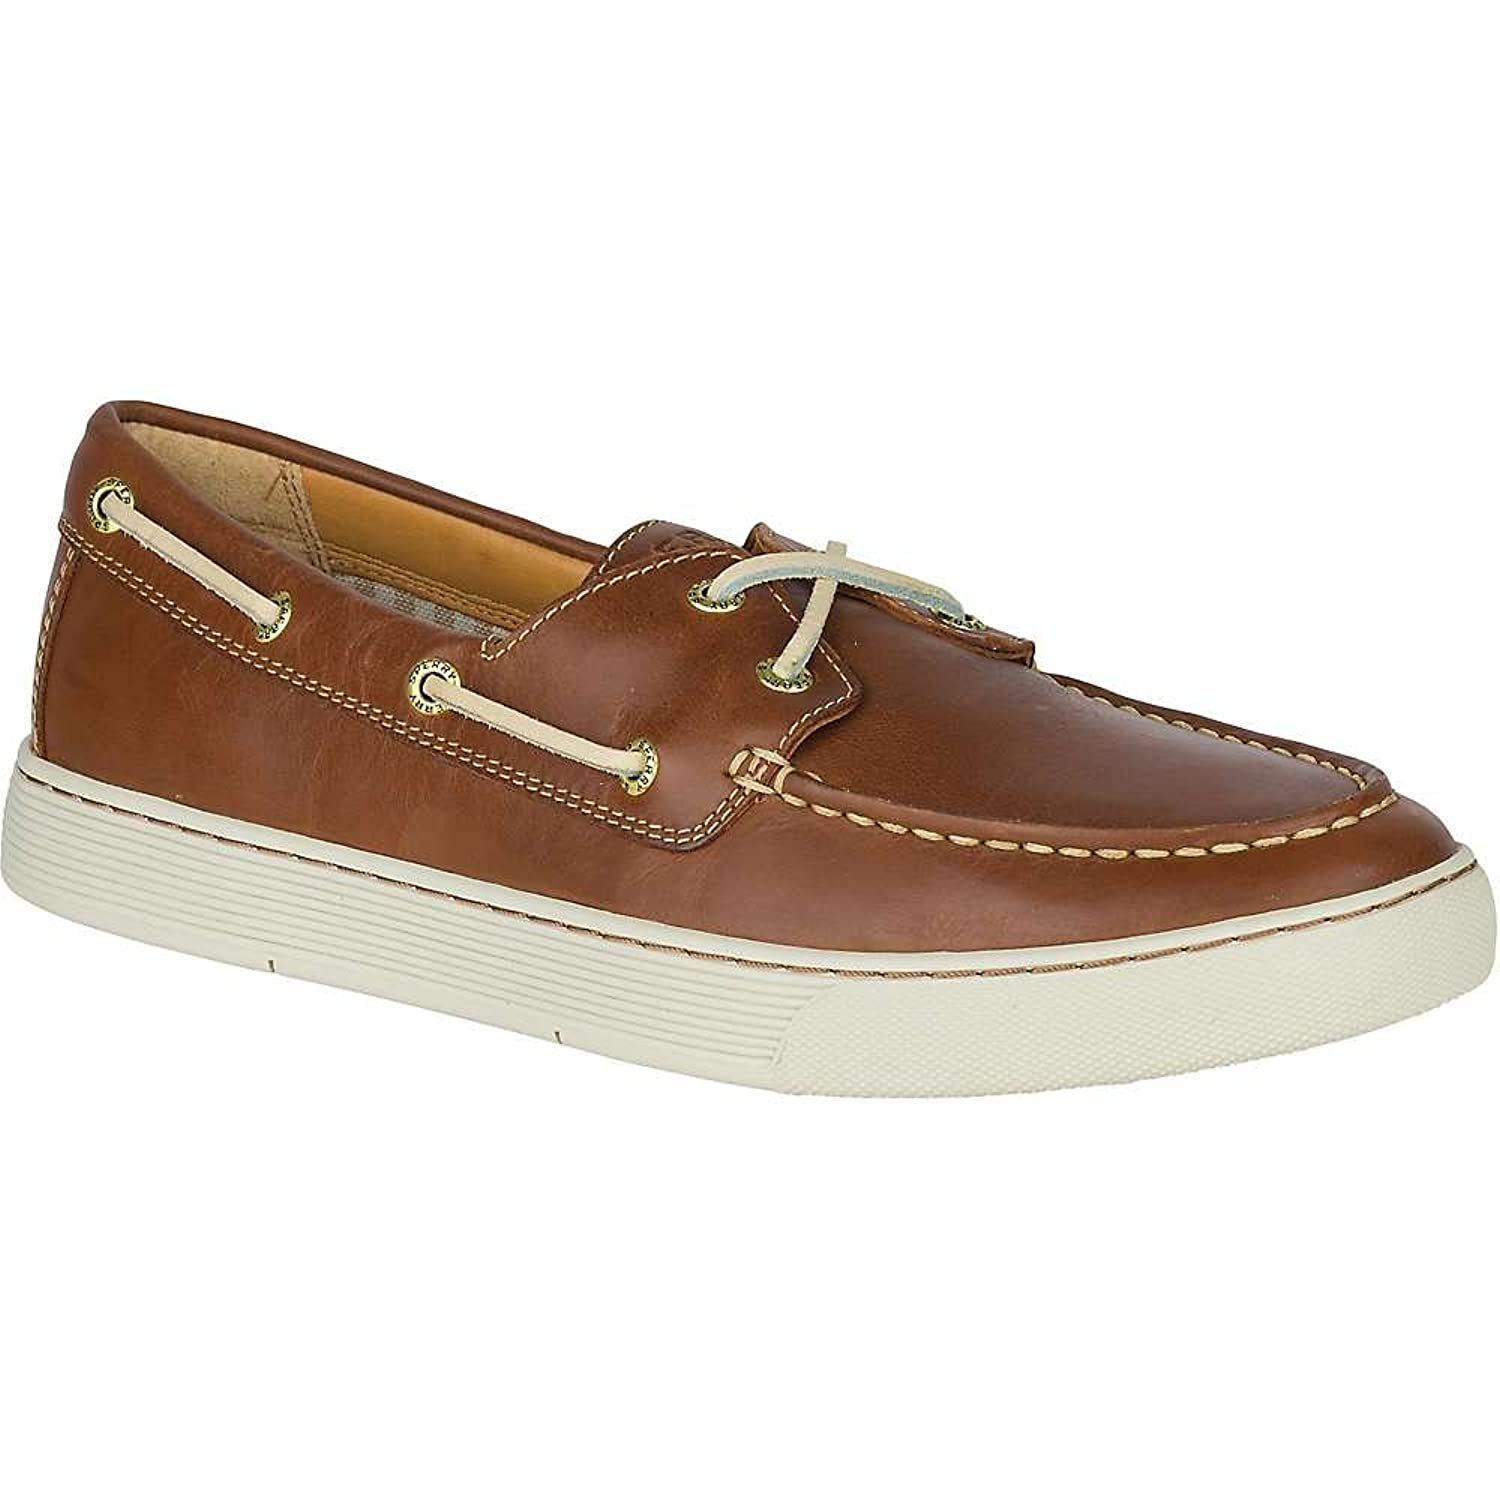 スペリー メンズ スニーカー Sperry Men's Gold Sport Casual 2 Eye w/[並行輸入品] B07BWJH1FZ